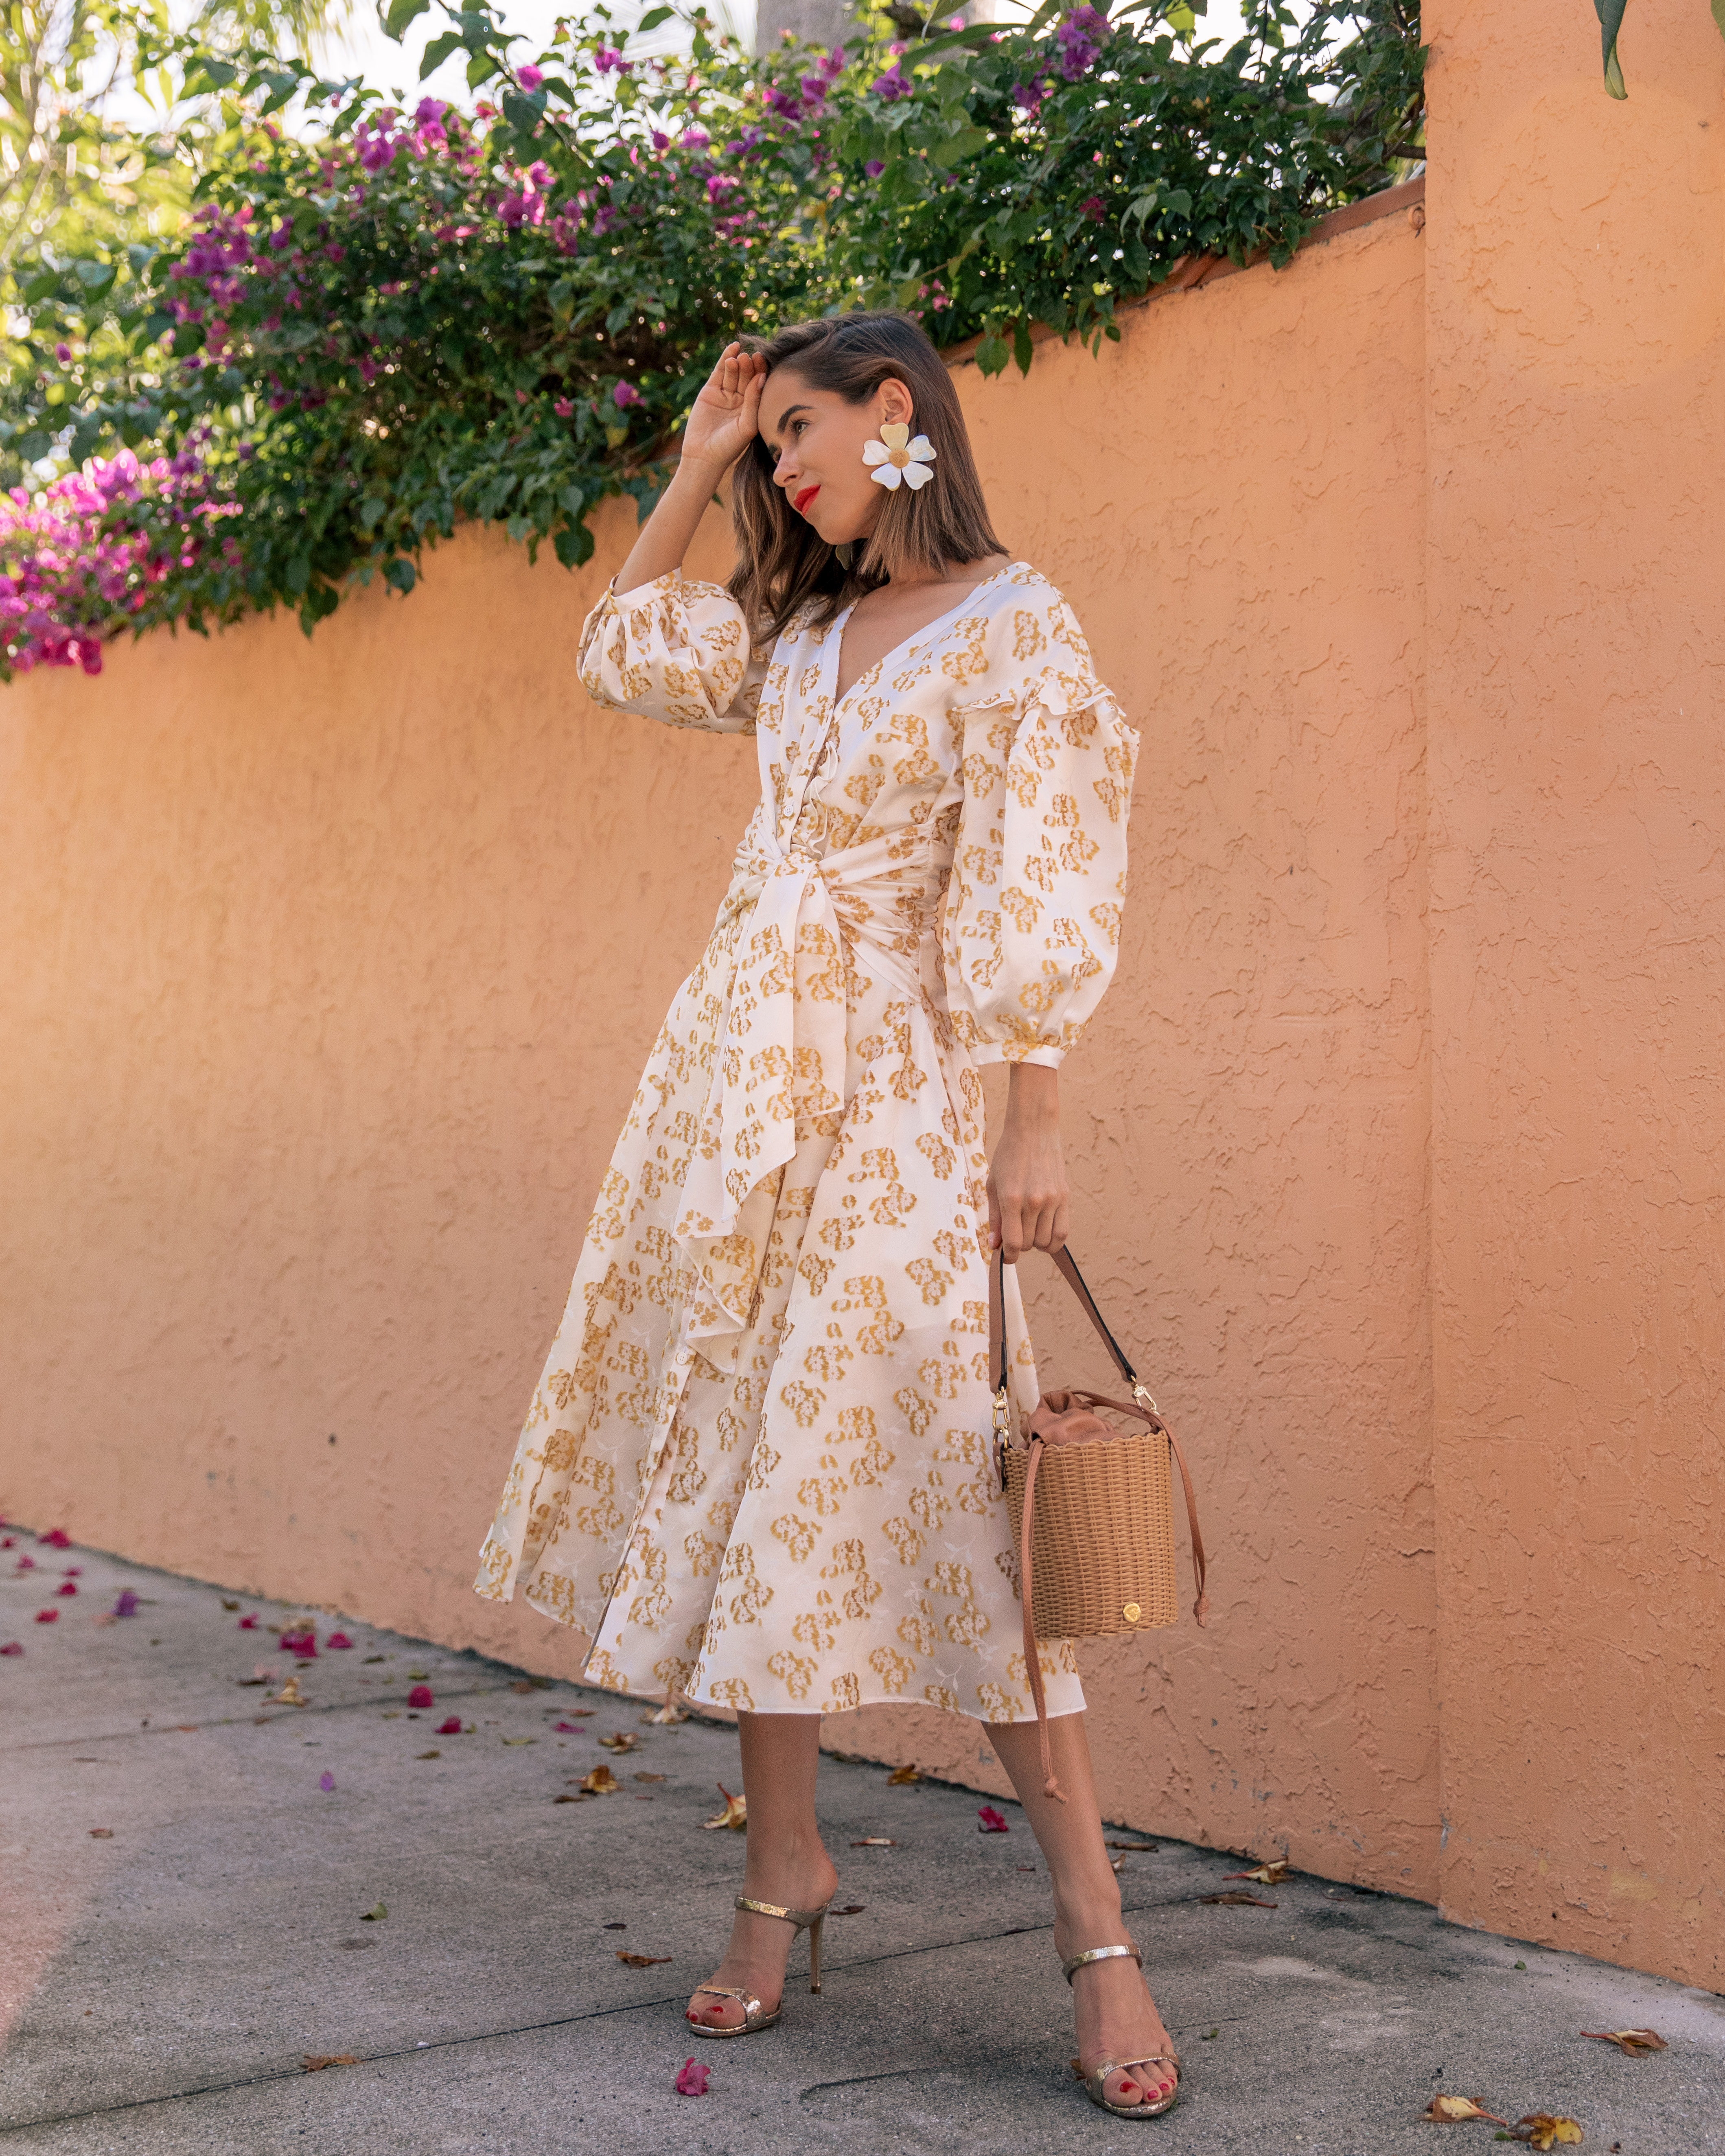 Stephanie Hill from The Style Bungalow wears ootd featuring Audra Yellow Dress